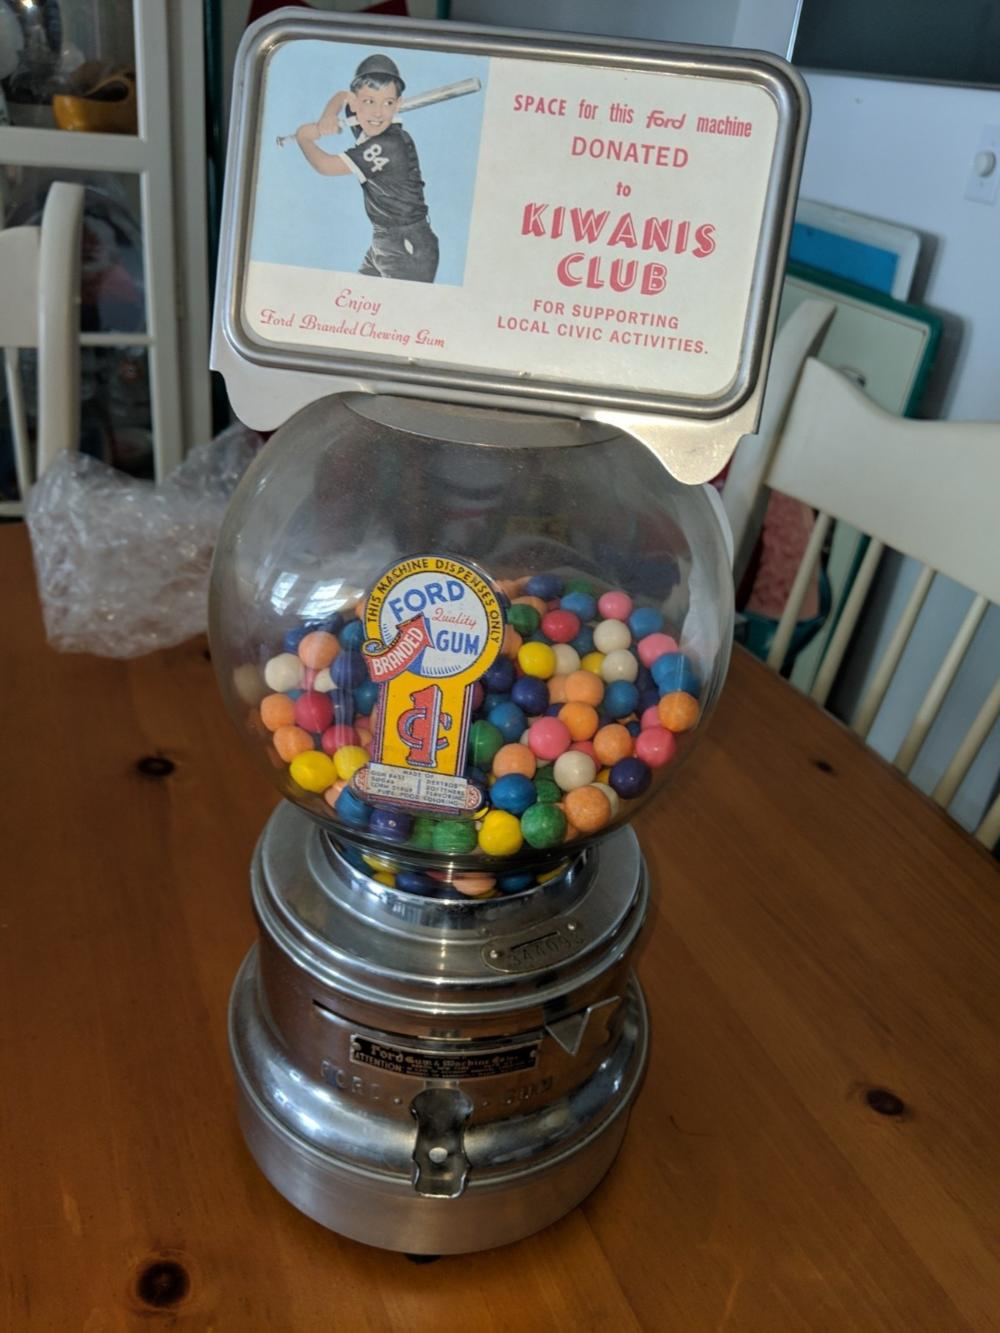 Ford Gumball Machine